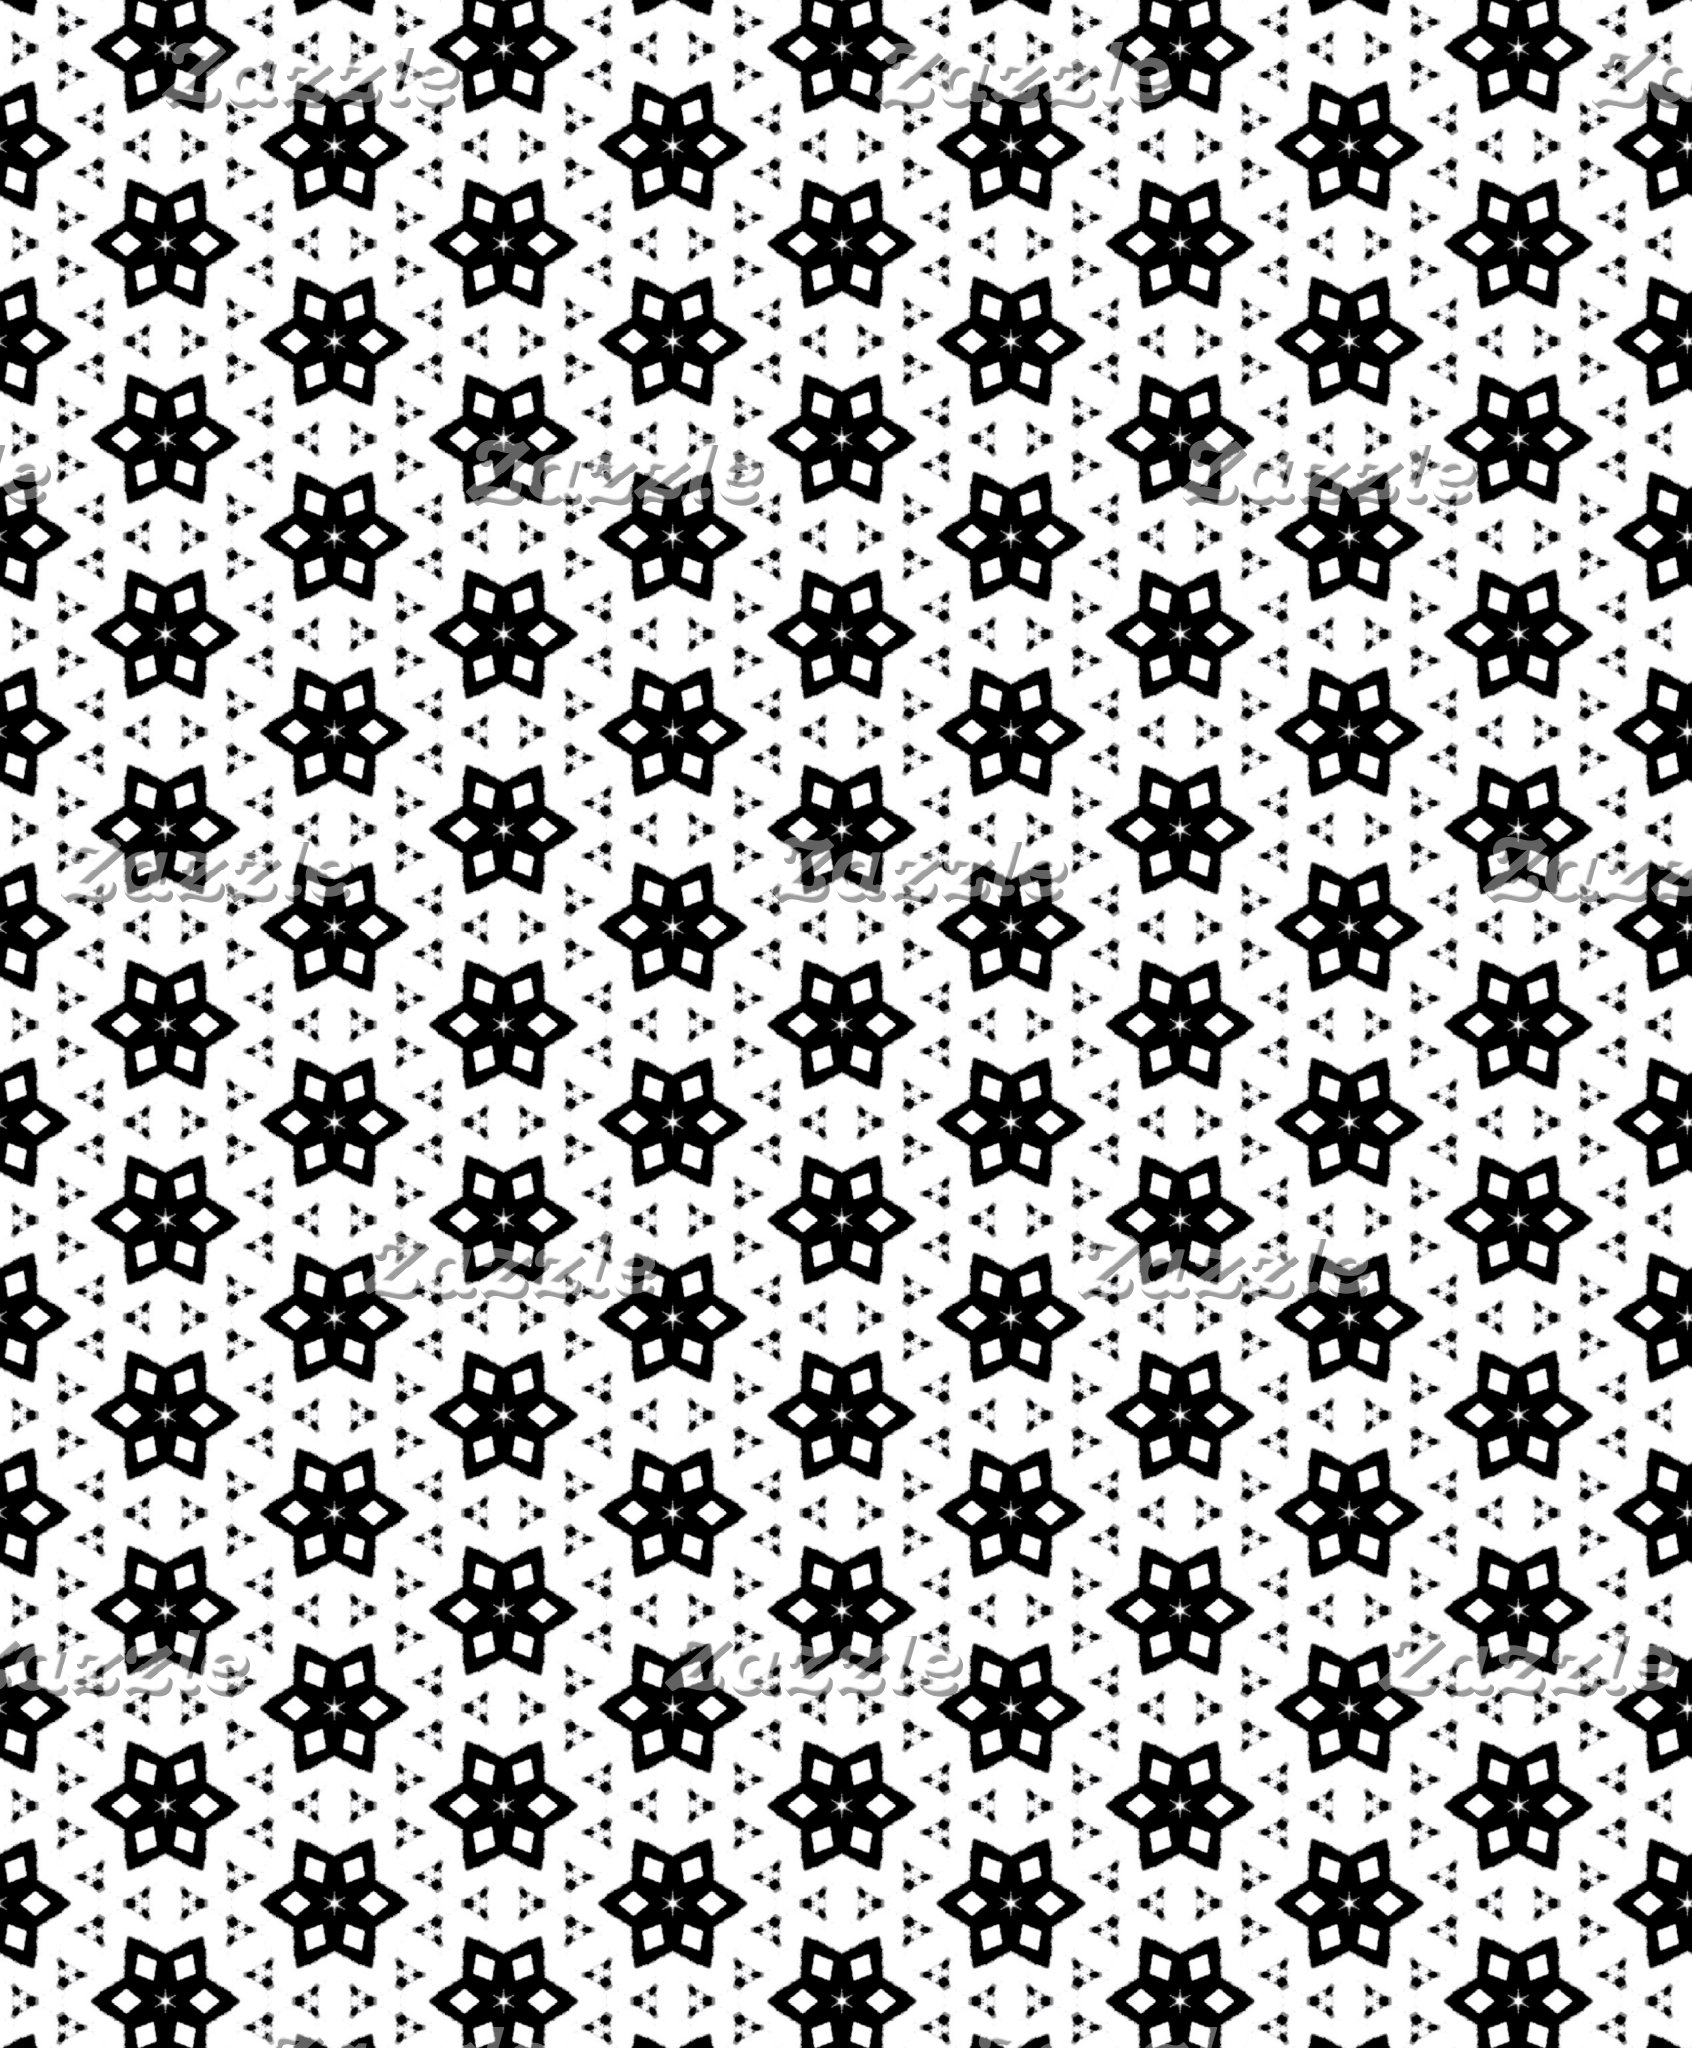 Black & White Patterns | Hexagons III